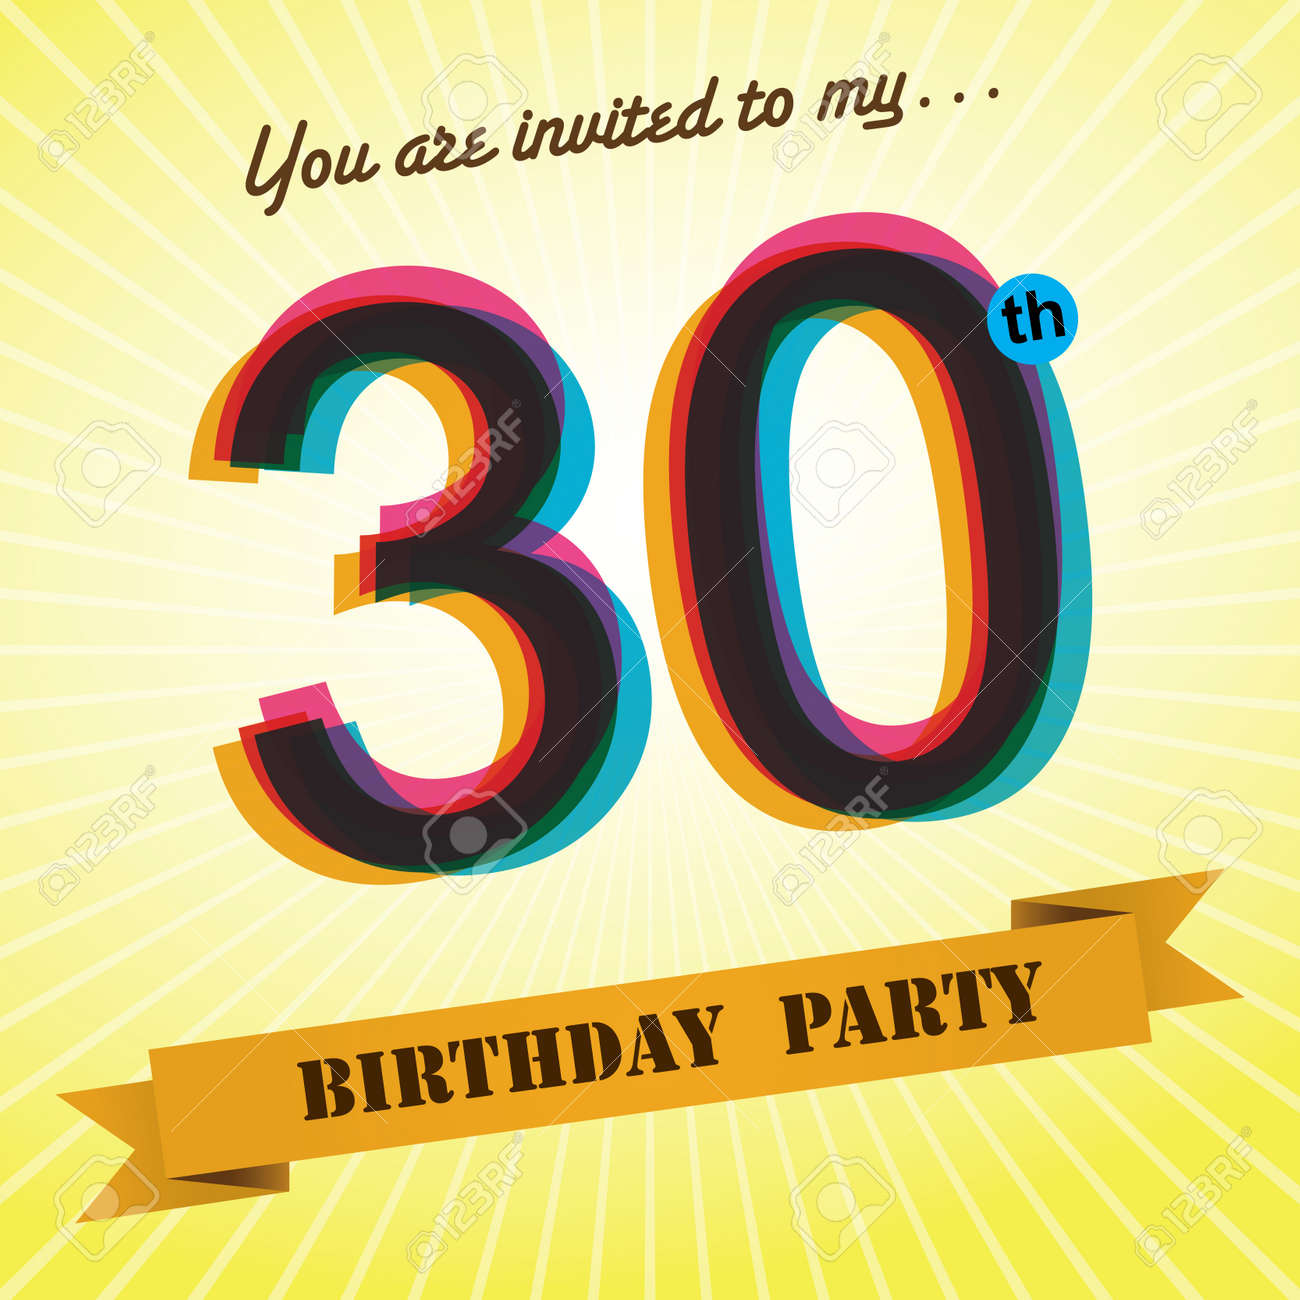 30th Birthday Party Invite Template Design Retro Style Vector